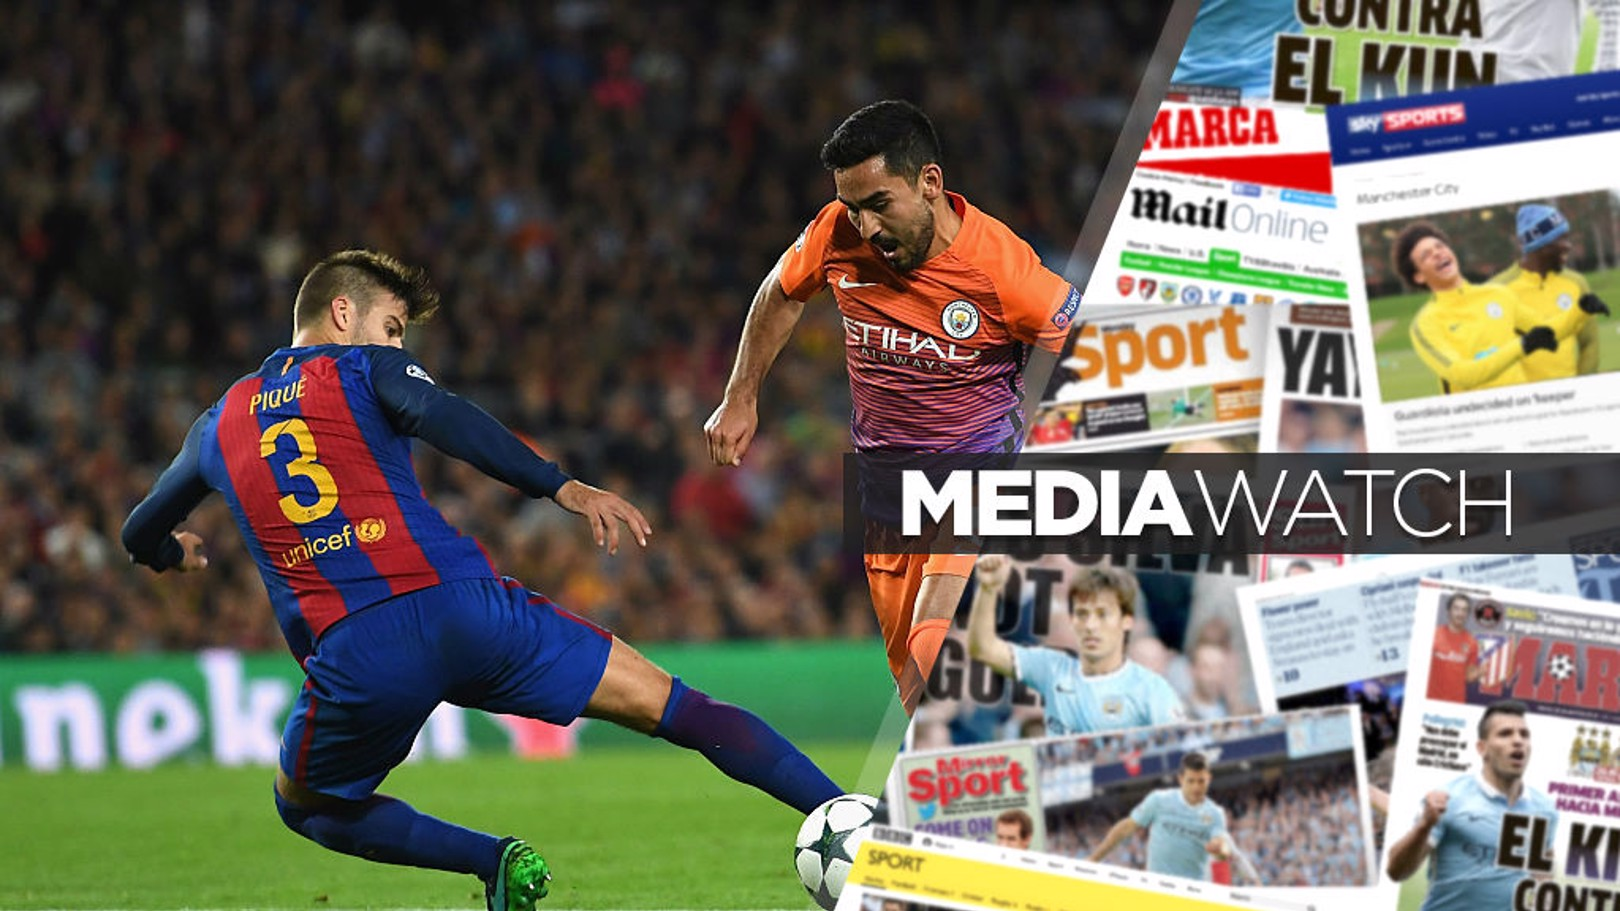 MEDIA WATCH: Gerard Pique has been discussing City's current form.